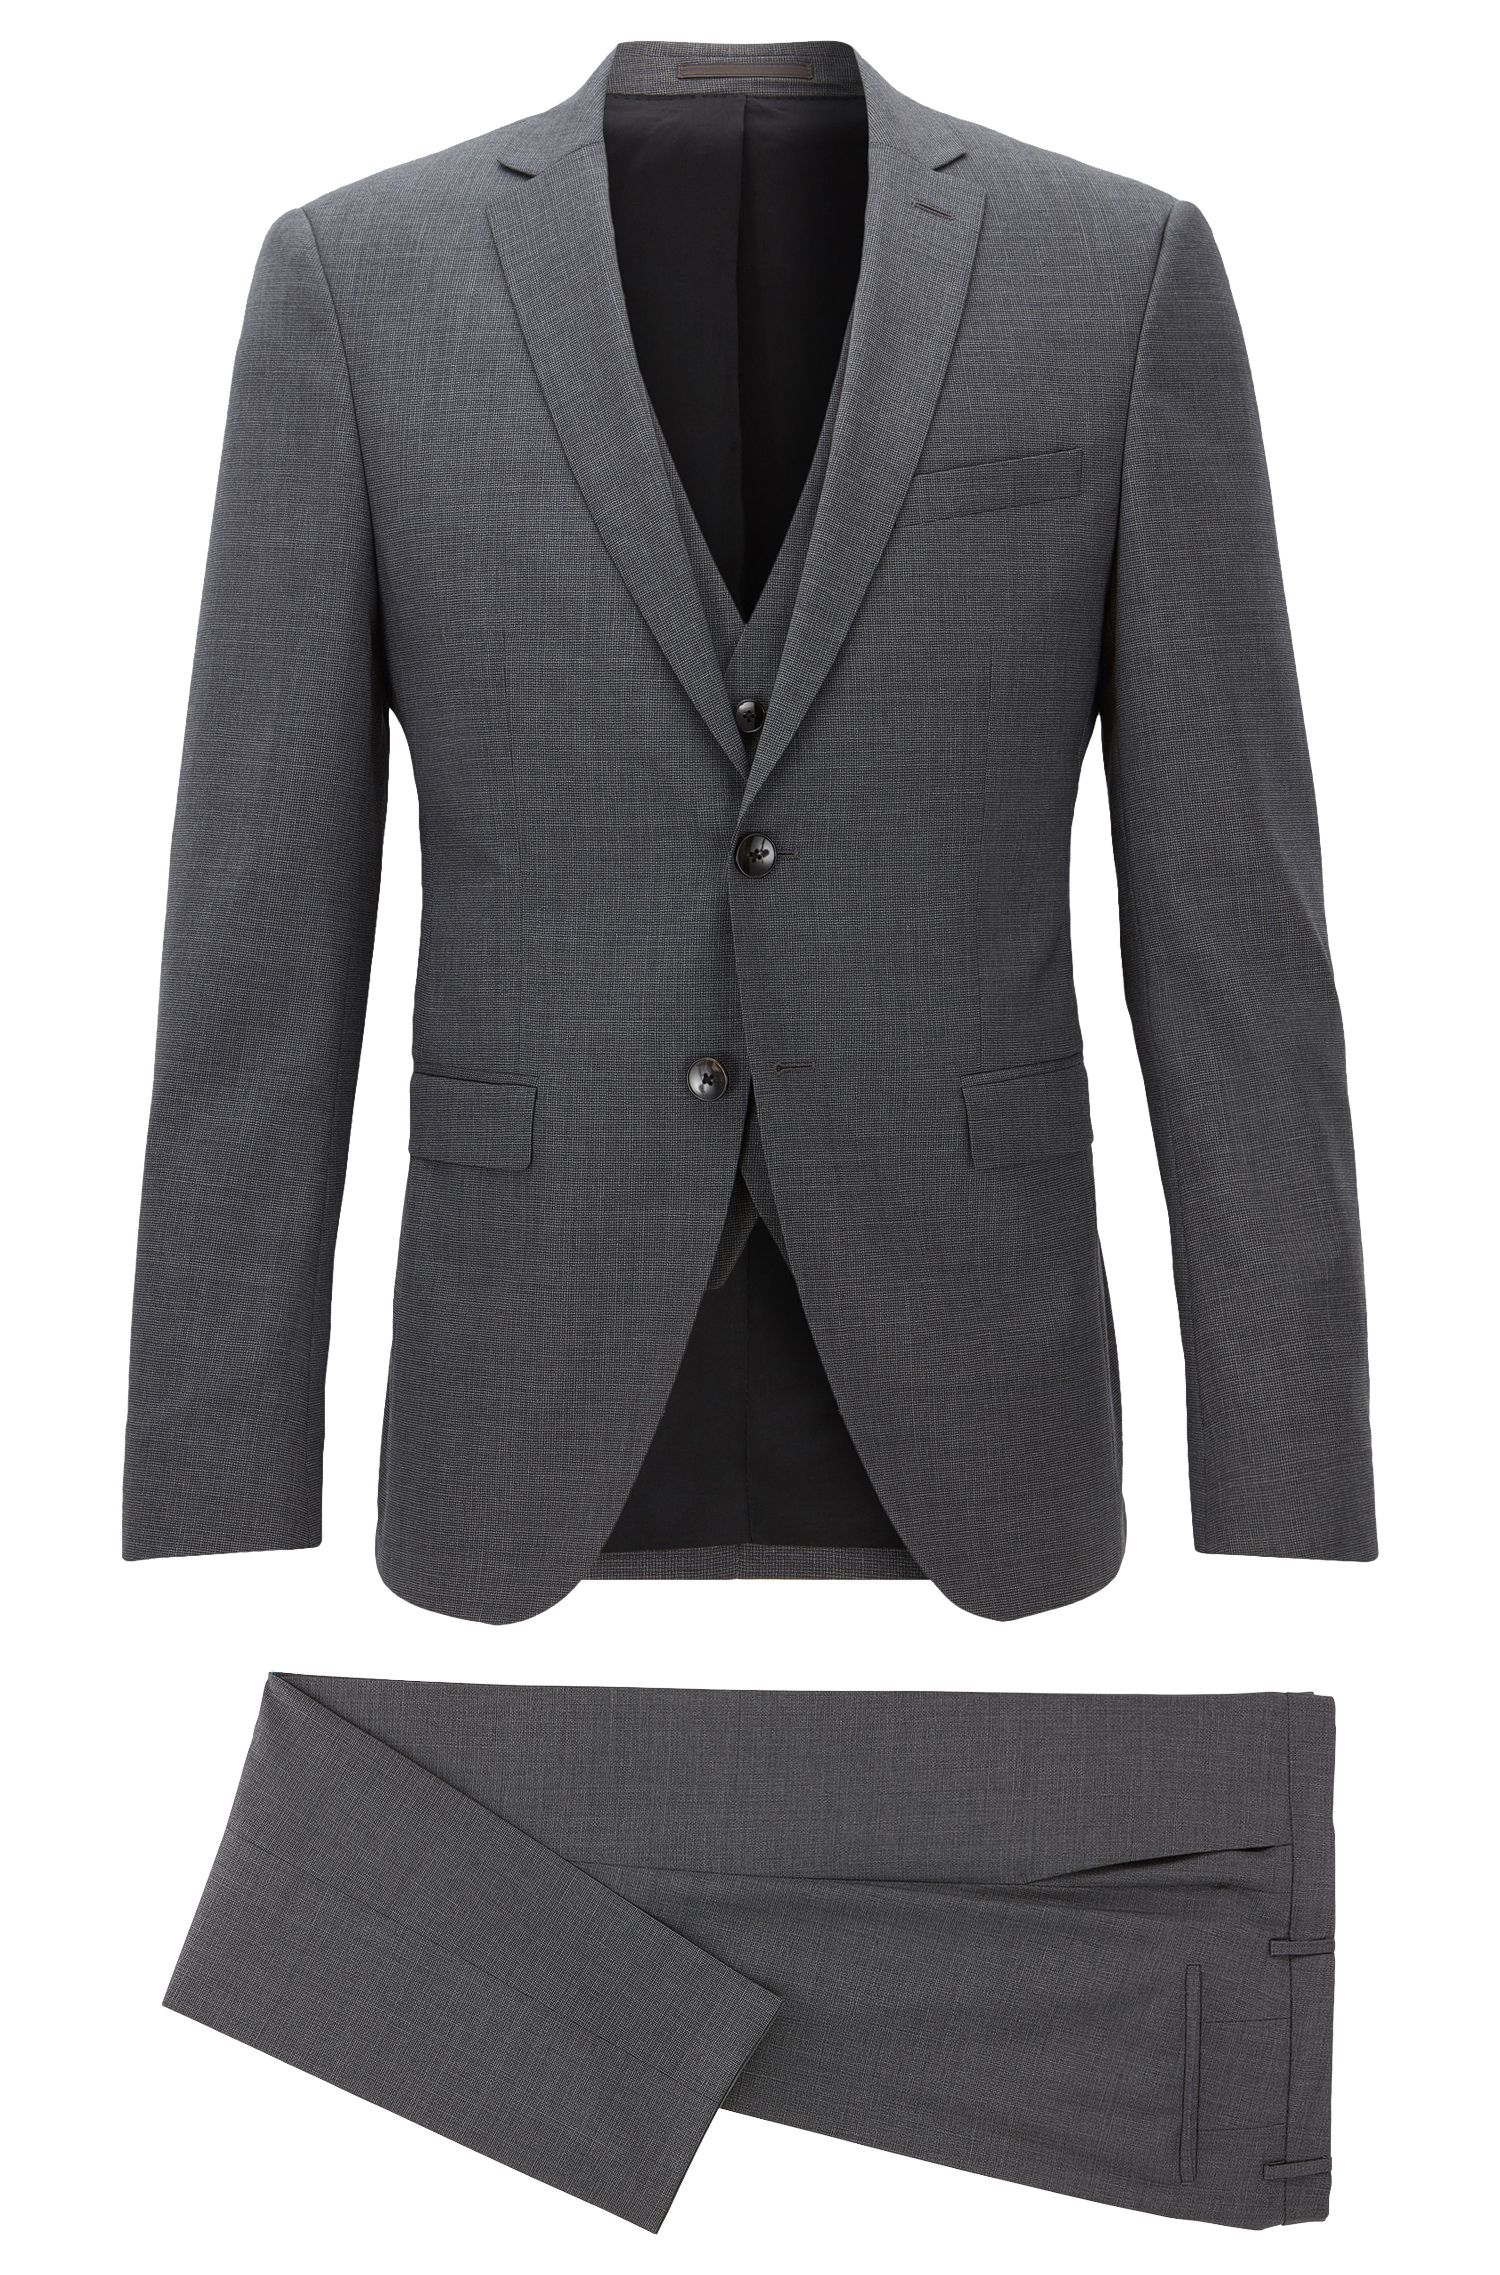 Virgin Wool 3-Piece Suit, Extra Slim Fit | Reymond/Wenton WE, Grey